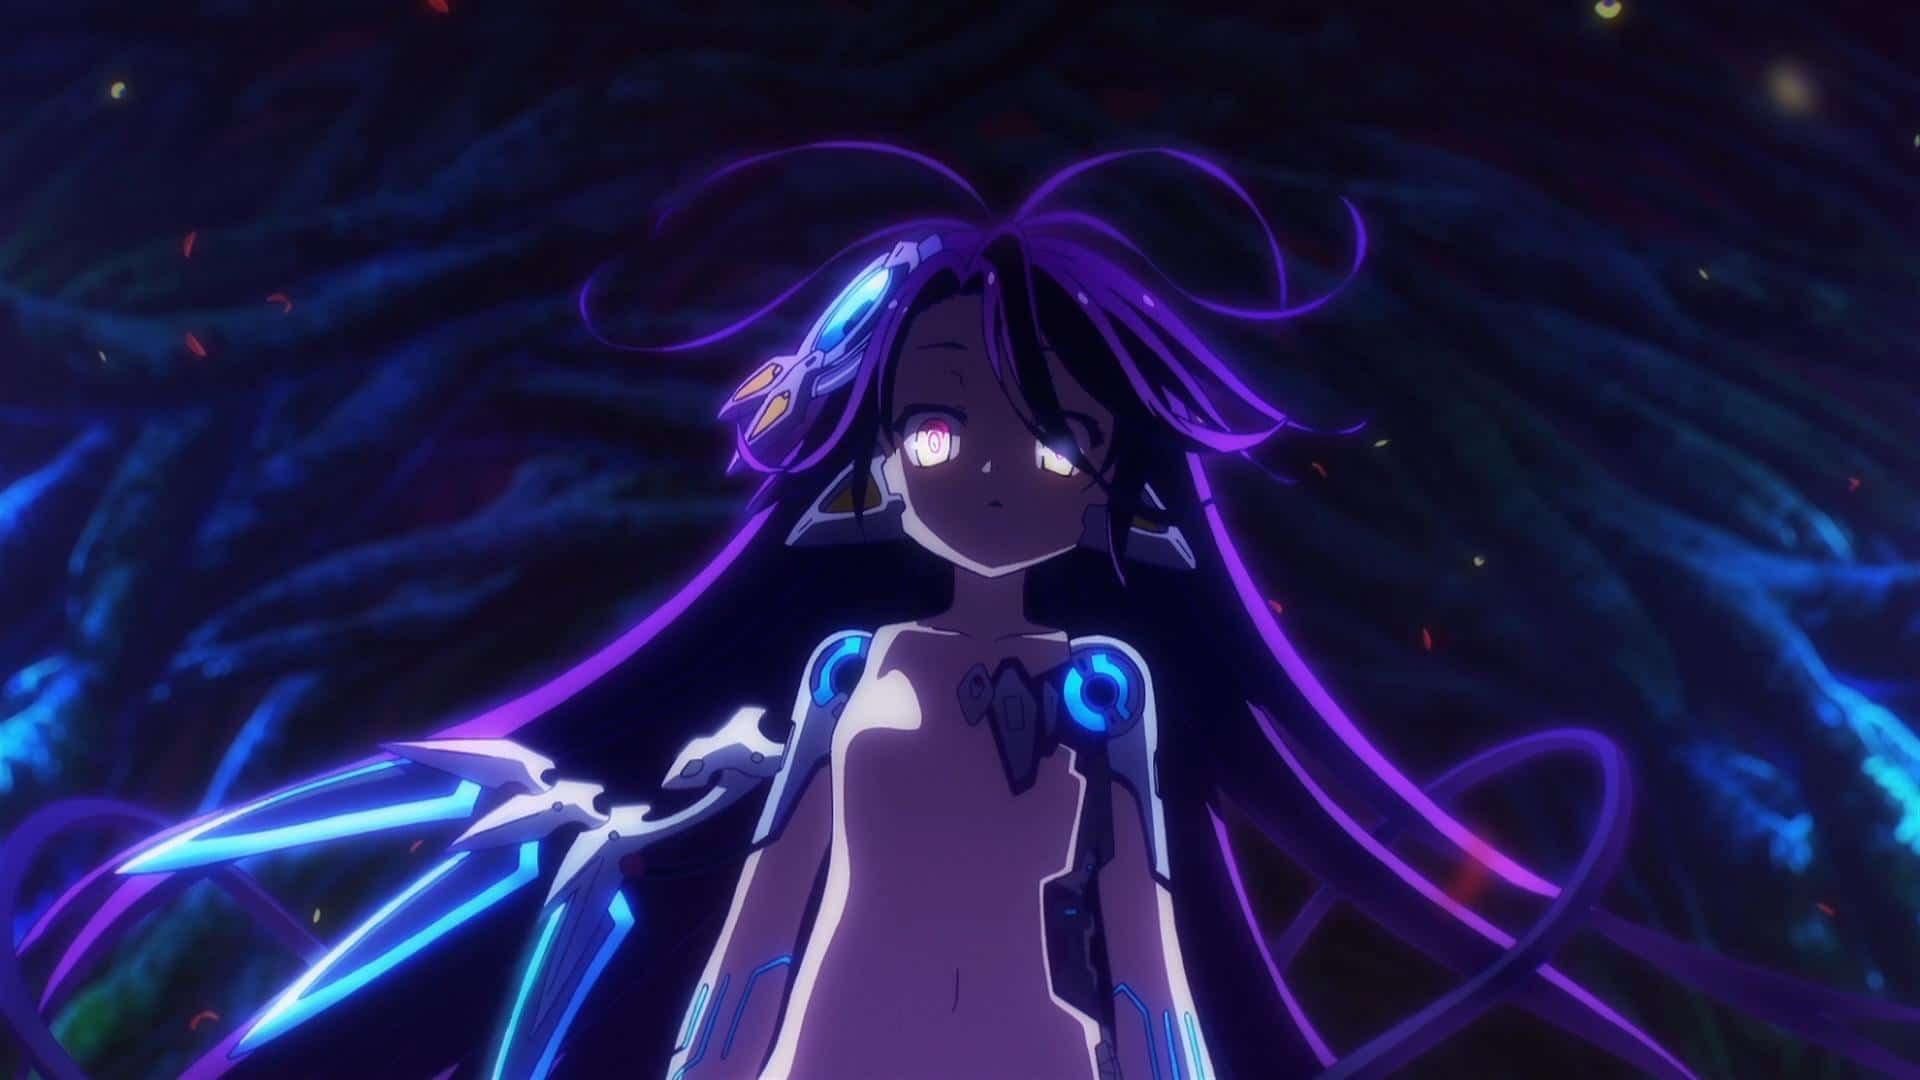 No Game No Life Zero Anime Content Advisory Basic Information More